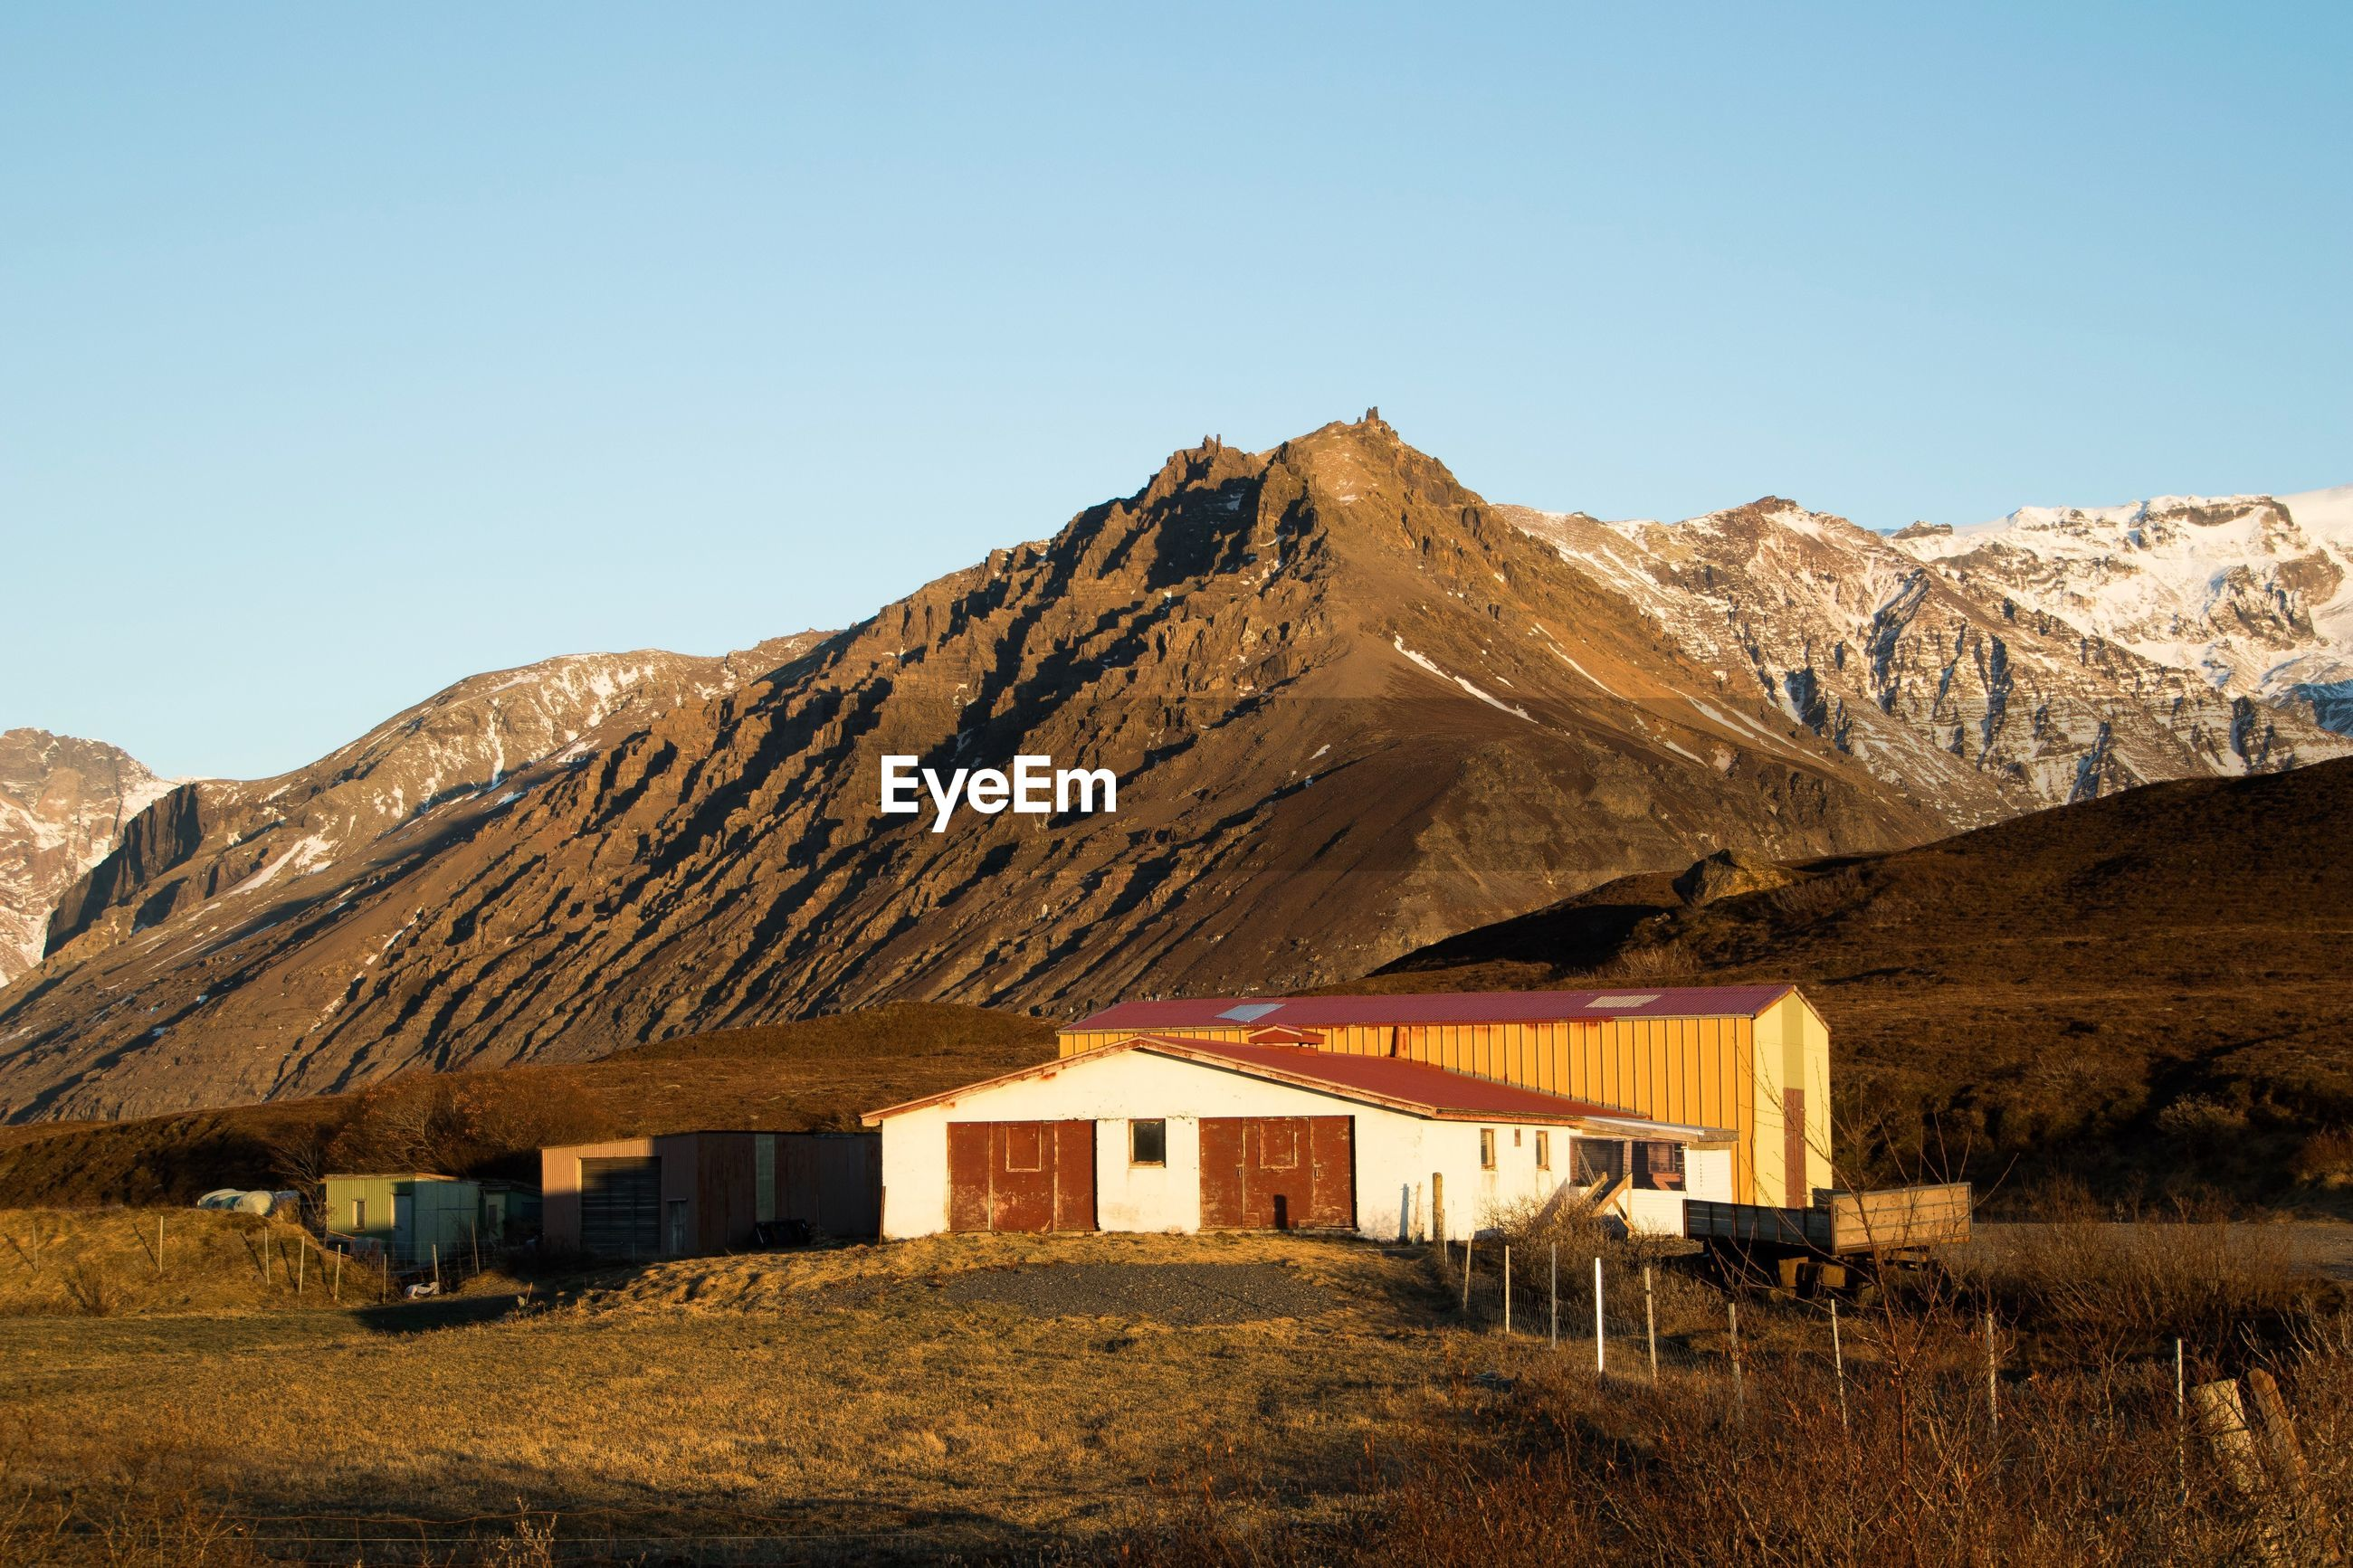 BUILT STRUCTURE ON LAND AGAINST MOUNTAIN RANGE AGAINST CLEAR SKY